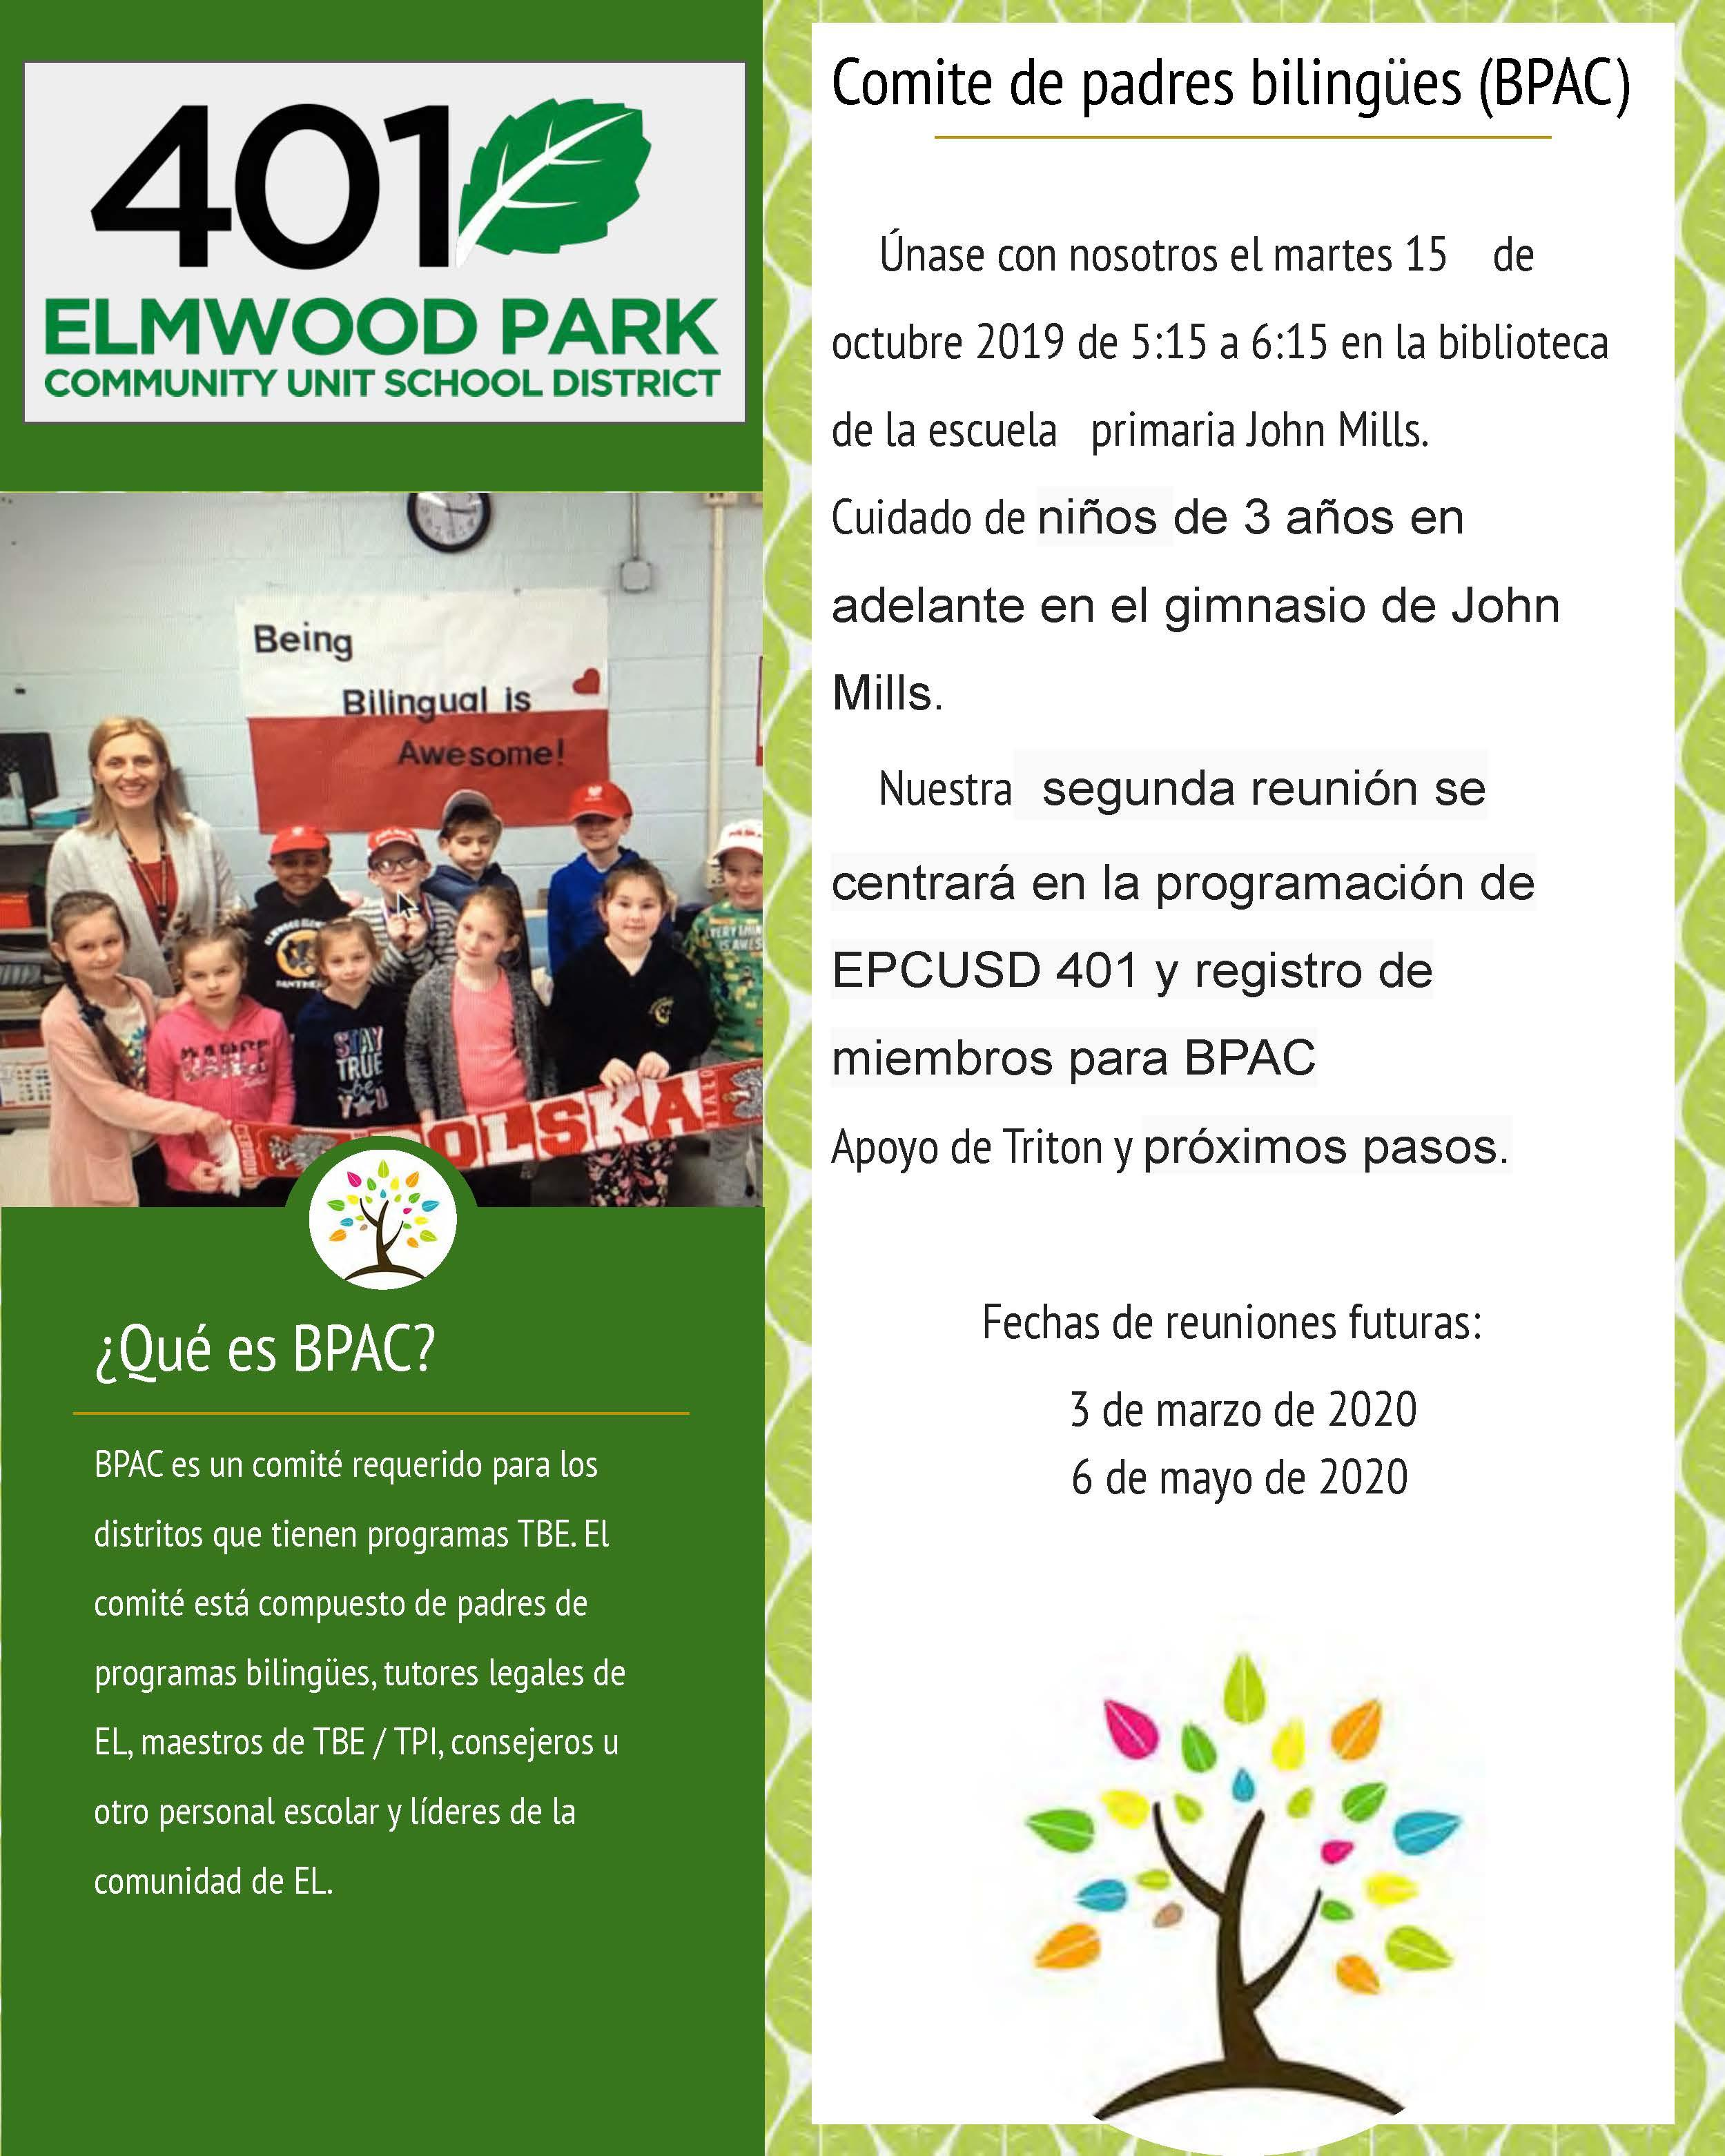 BPAC flyer in Spanish